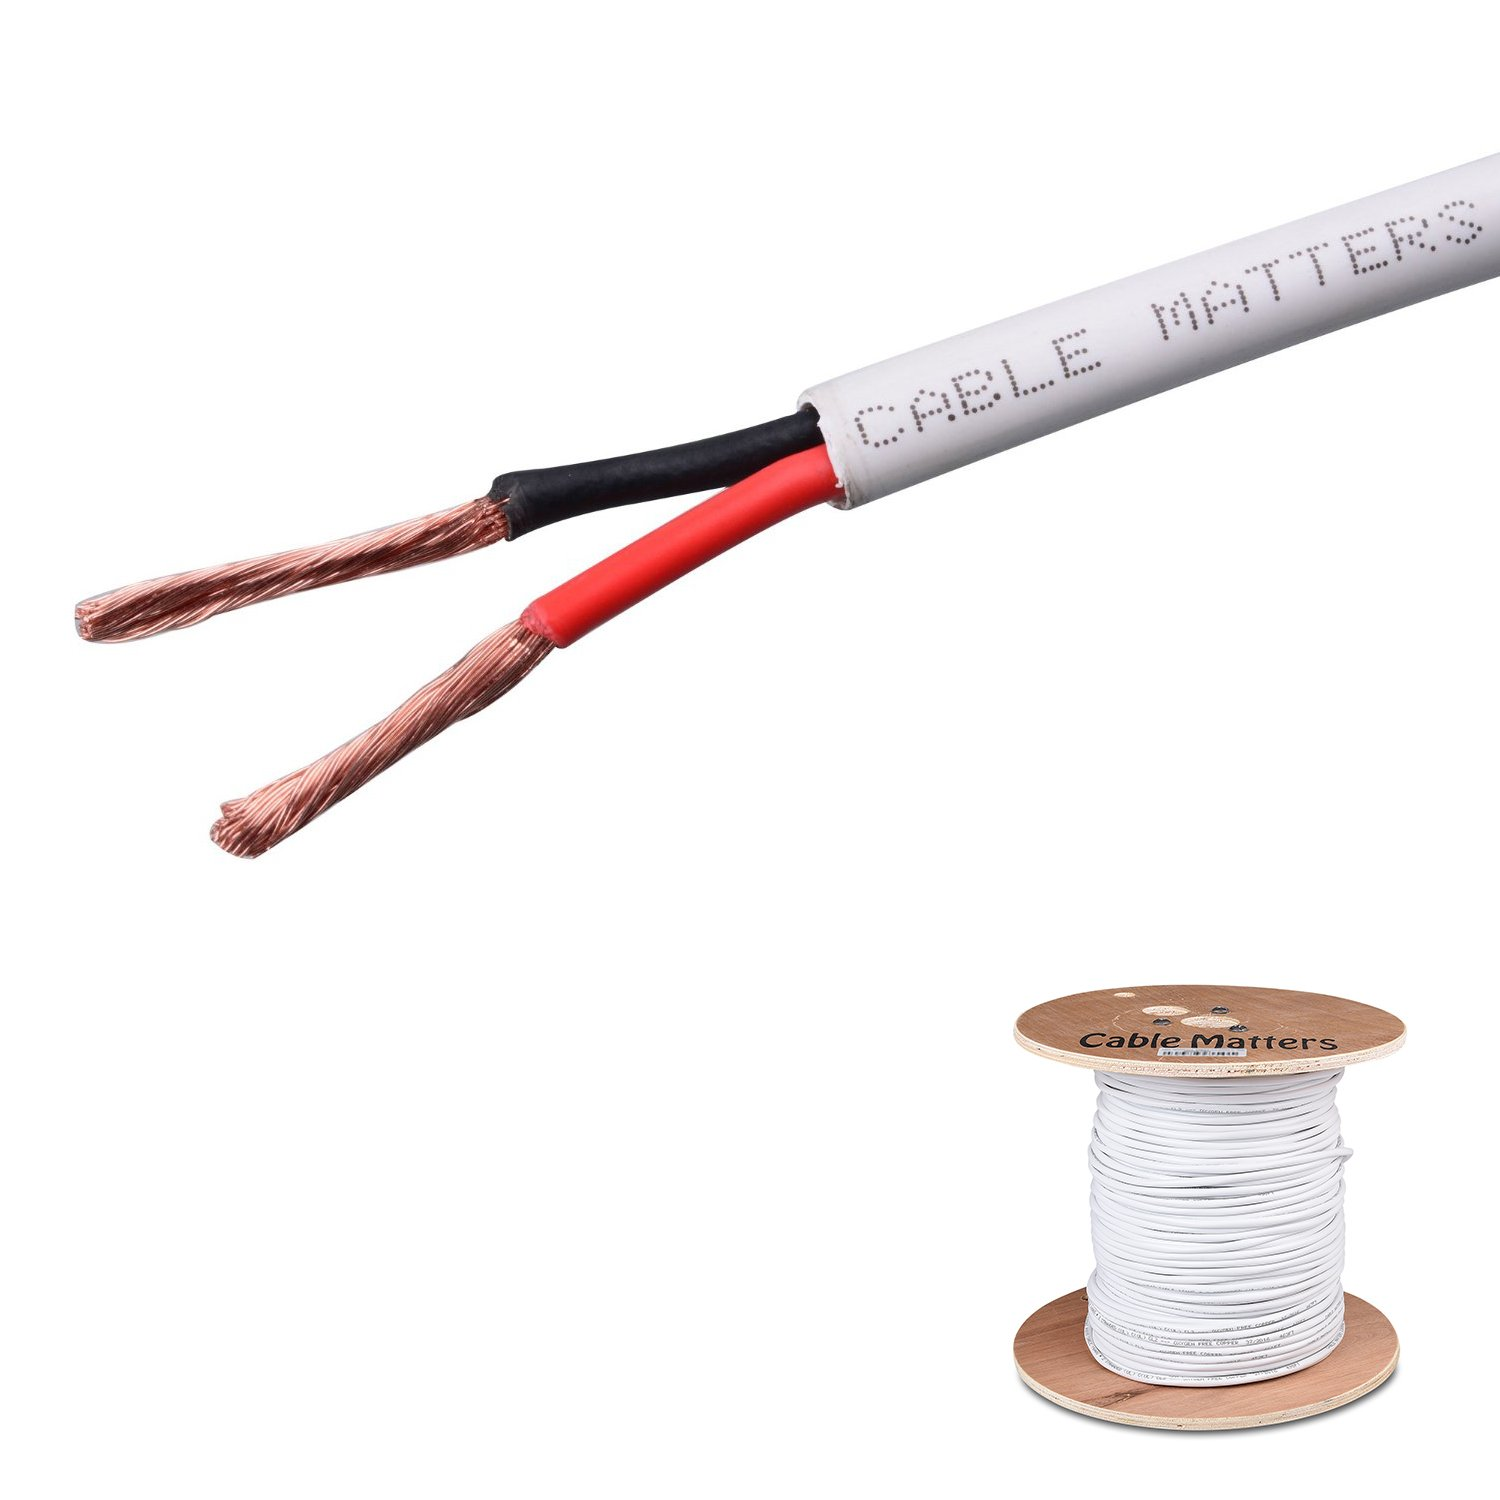 Cable Matters 12 Awg Cl2 In Wall Rated Oxygen Free Bare Monster Home Theater Wiring Copper 2 Conductor Speaker Wire 500 Feet Audio